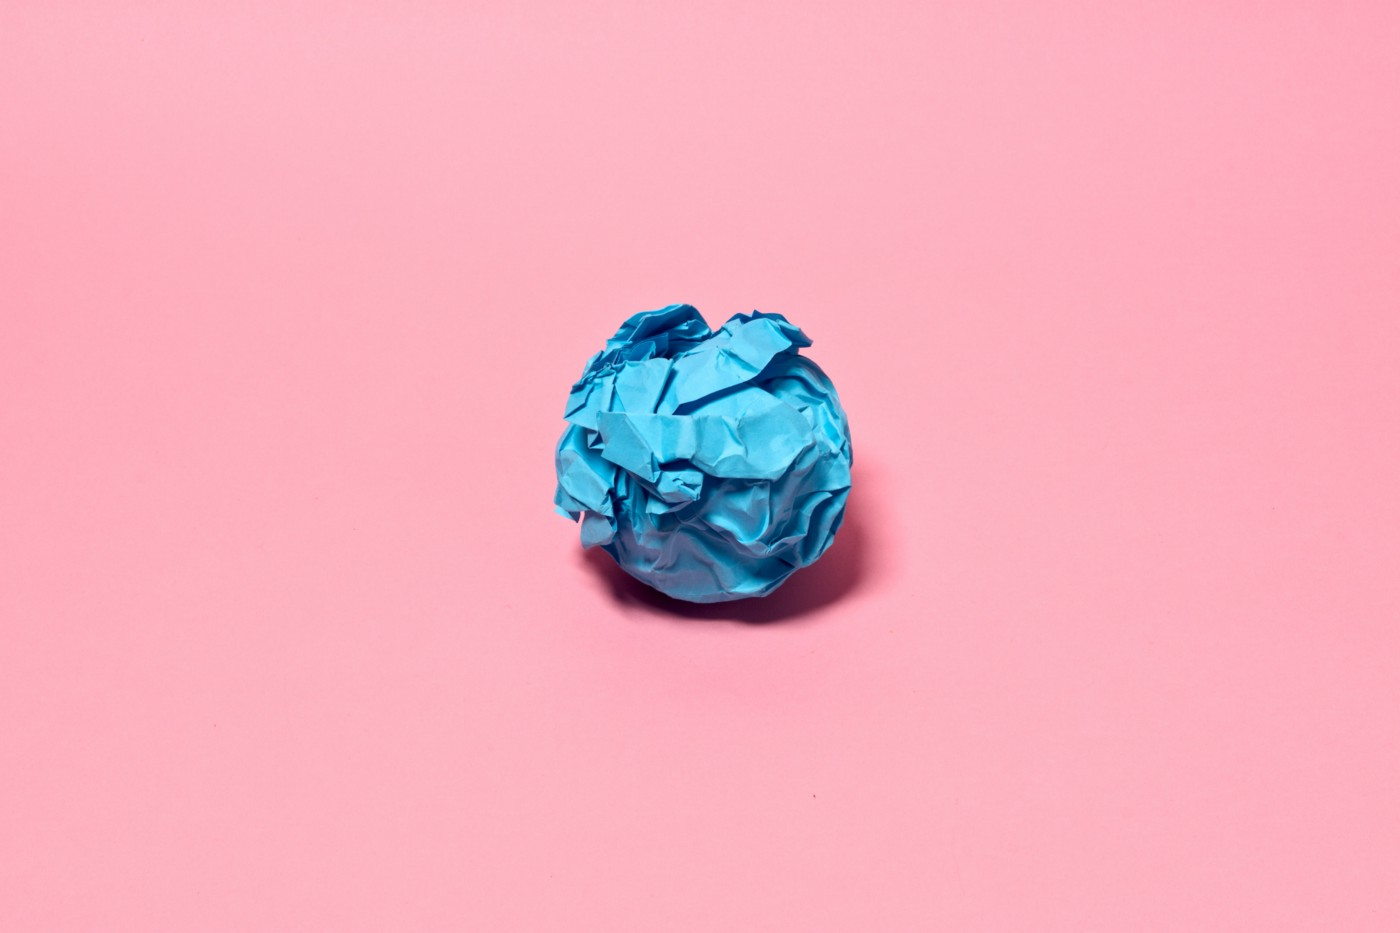 A crumpled ball of blue paper against a solid pink background.